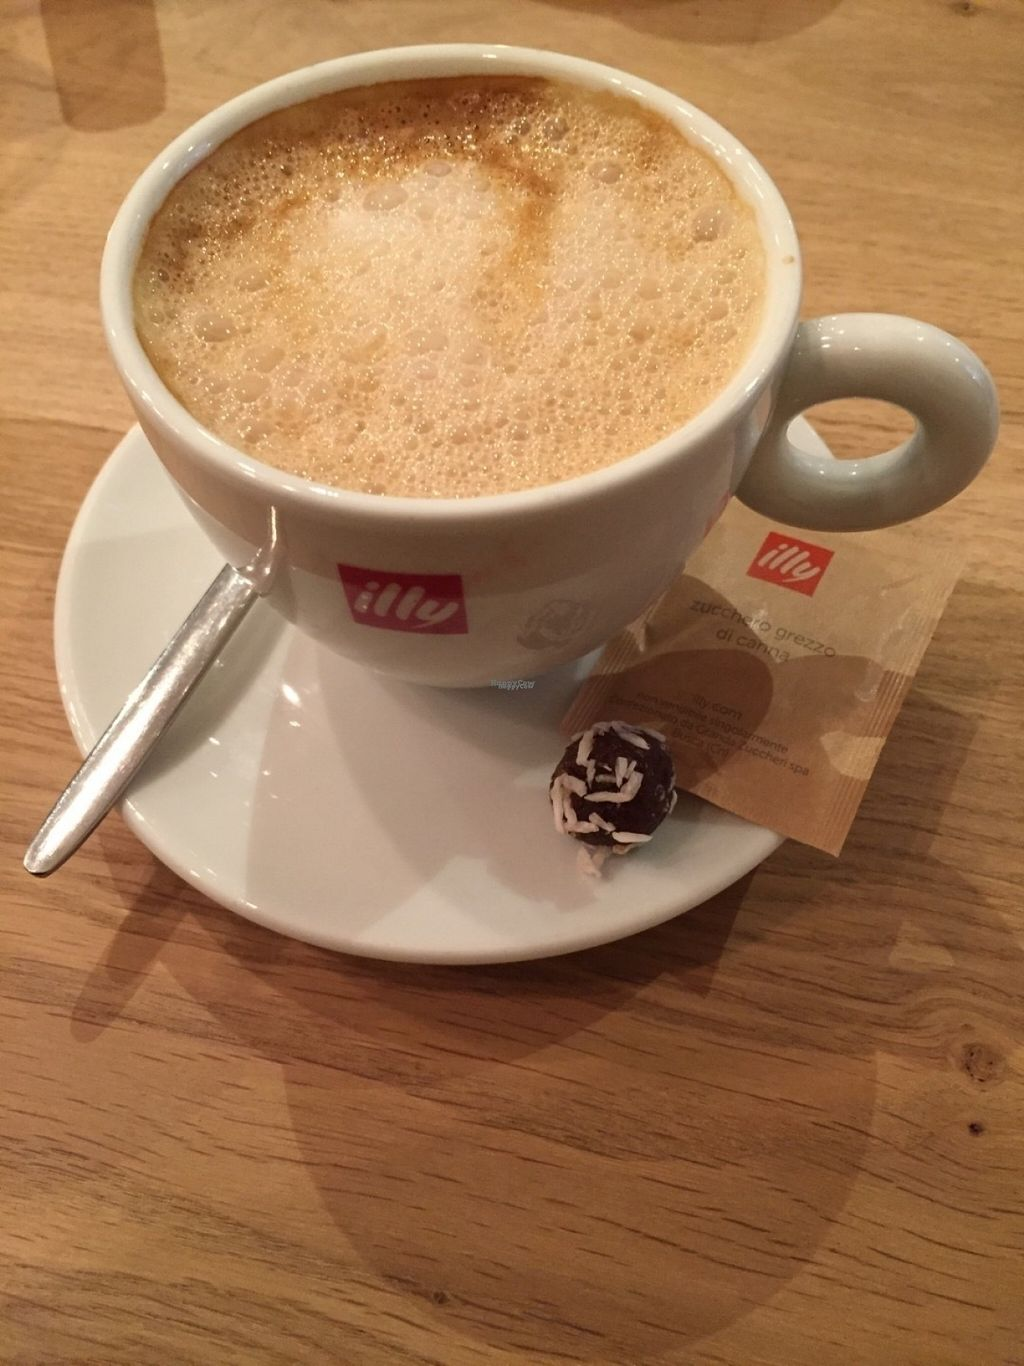 """Photo of CLOSED: FreshMoods  by <a href=""""/members/profile/Vanya"""">Vanya</a> <br/>Coffee with almondmilk and a vegan snack <br/> November 3, 2016  - <a href='/contact/abuse/image/77787/186450'>Report</a>"""